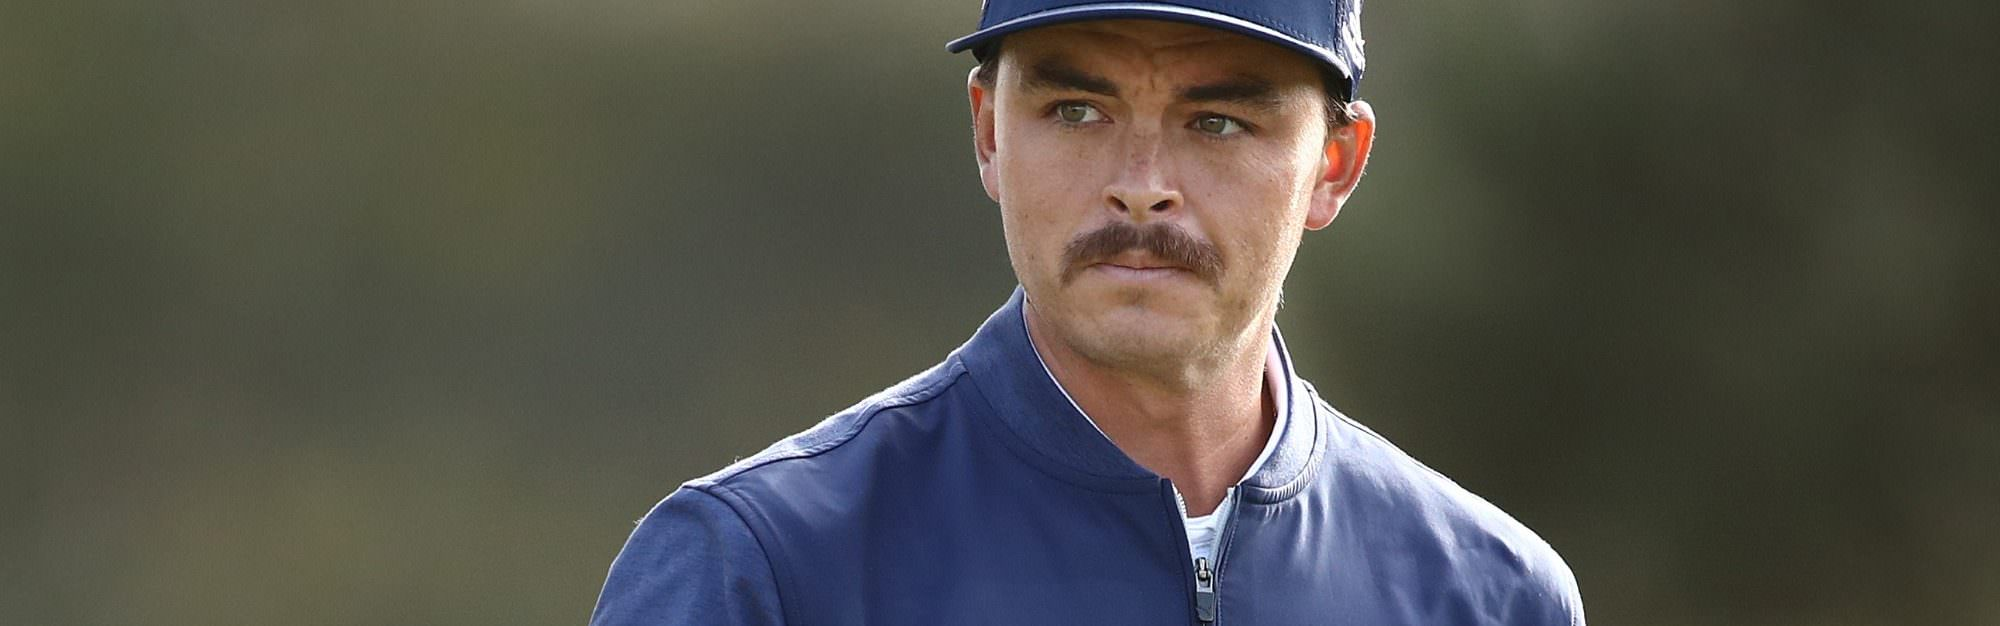 The Slam: The curious case of Rickie Fowler just got even more curious